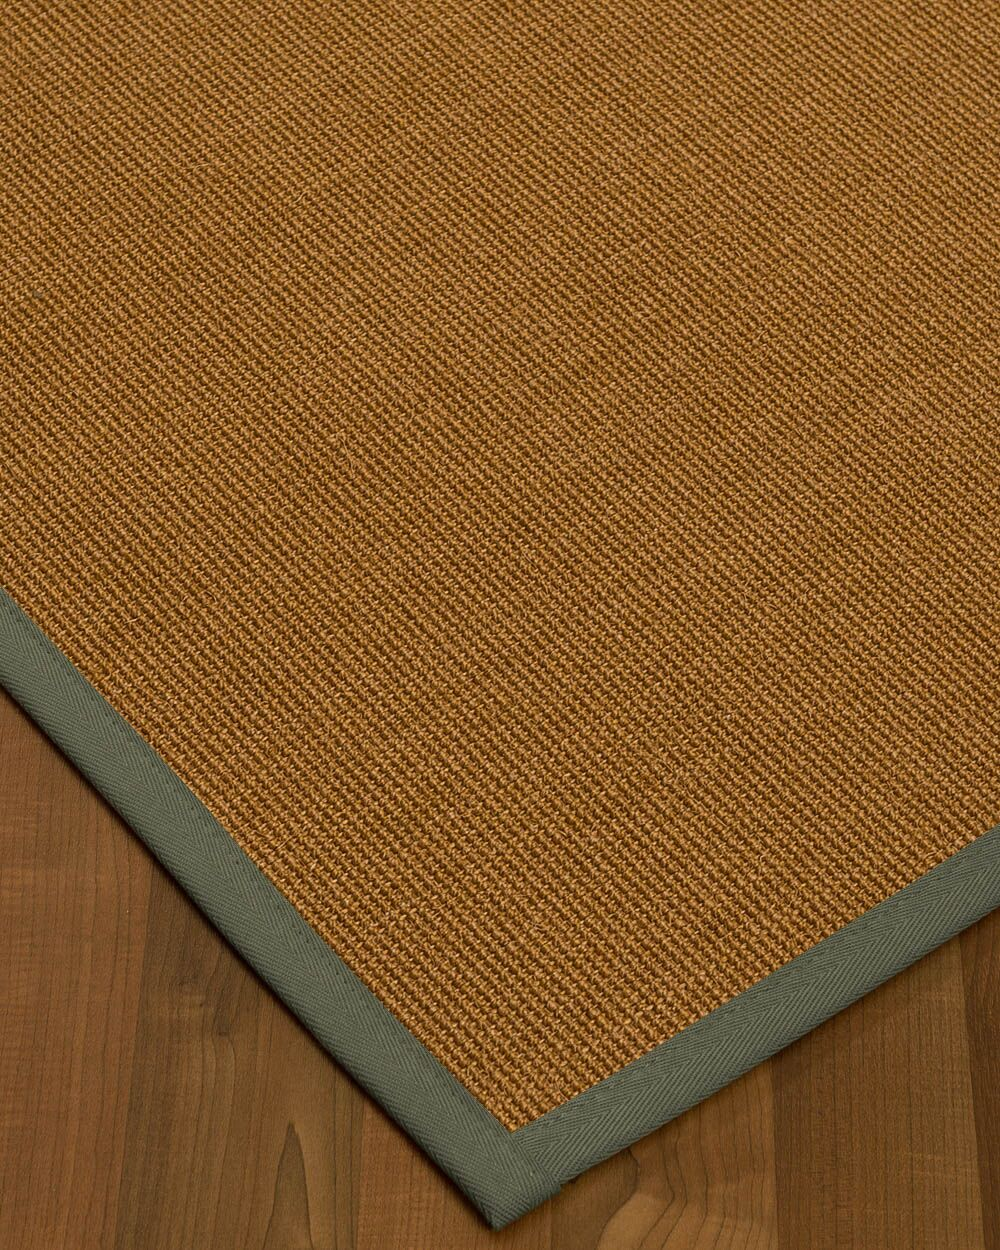 Antonina Border Hand-Woven Brown/Stone Area Rug Rug Size: Rectangle 9' x 12', Rug Pad Included: Yes